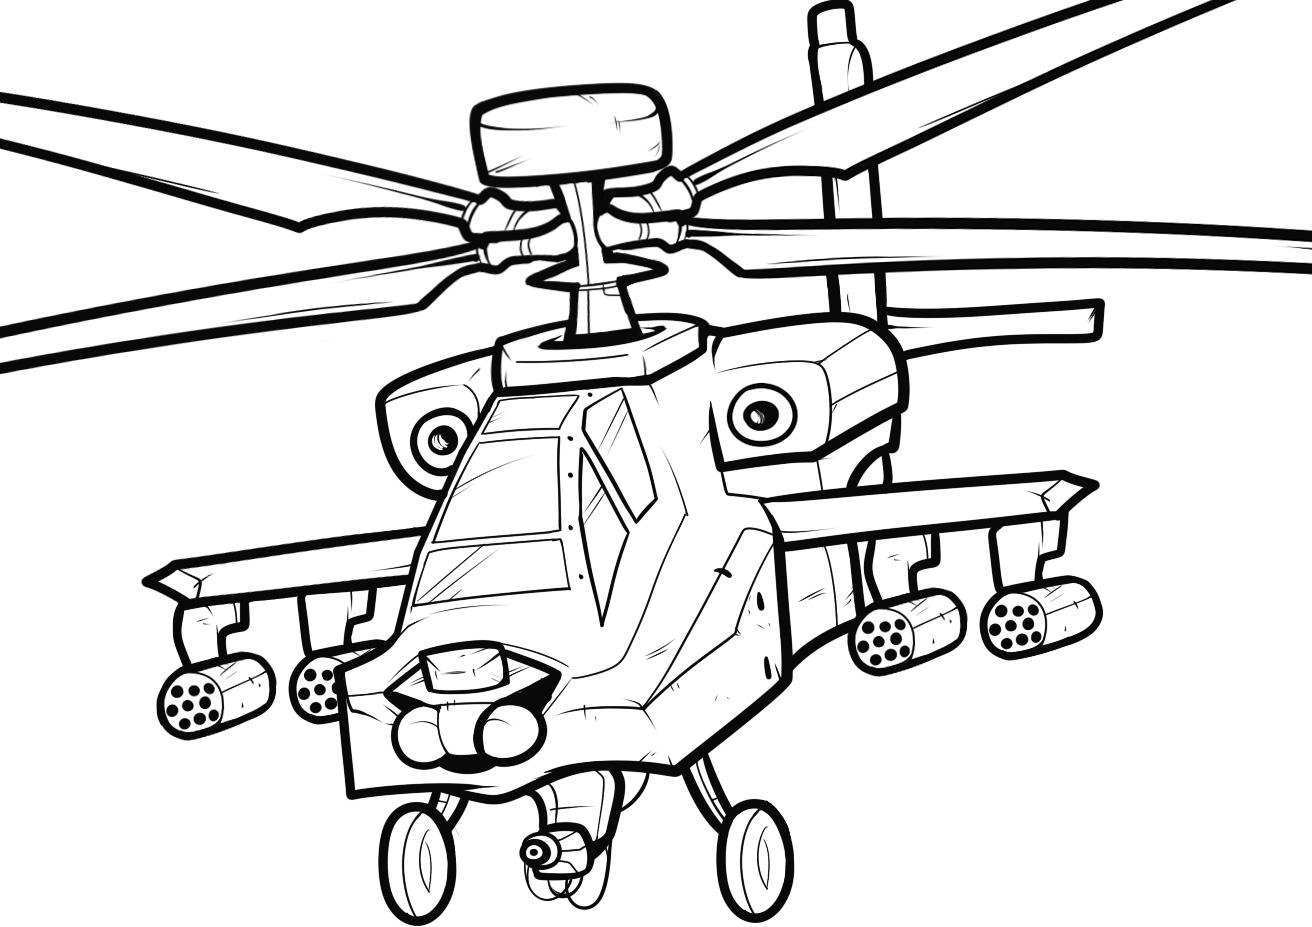 military helicopter coloring pages coloring book holiday coloring pages printable free - Free Printable Holiday Coloring Pages